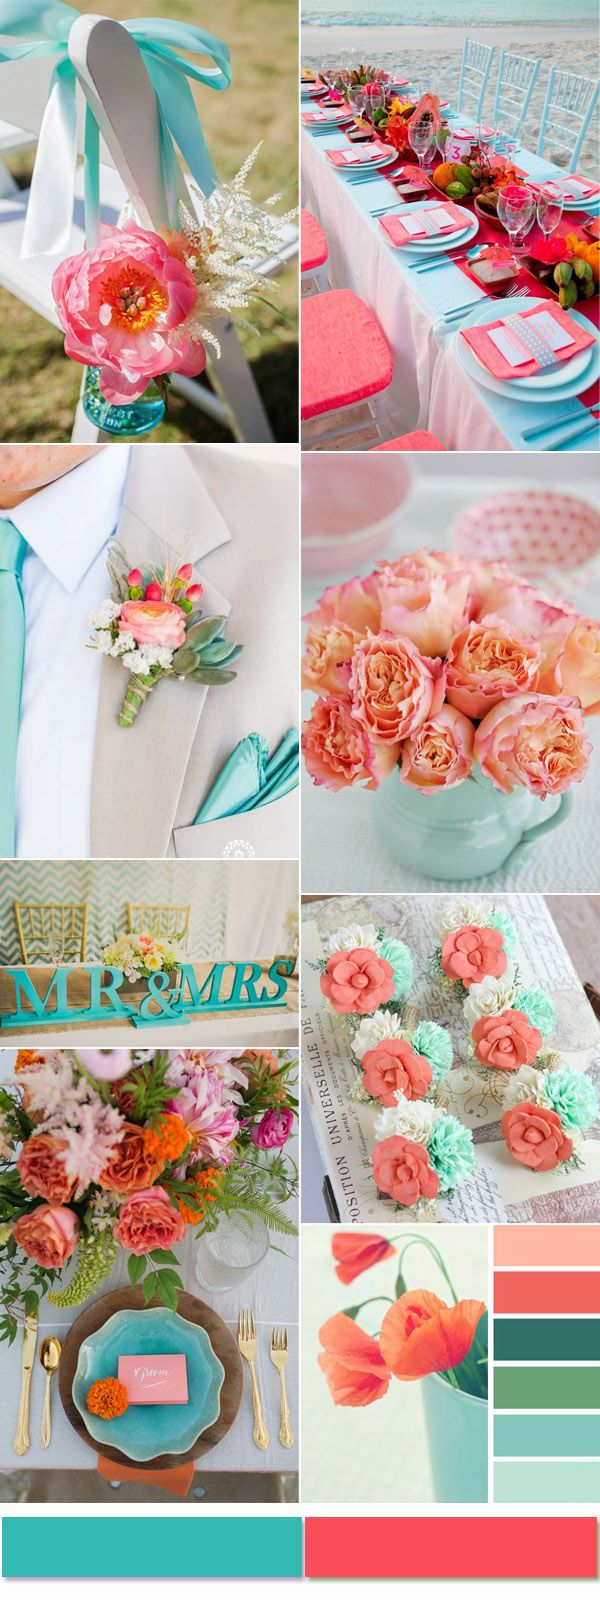 Perfect Turquoise and Coral Wedding Color Combination Ideas